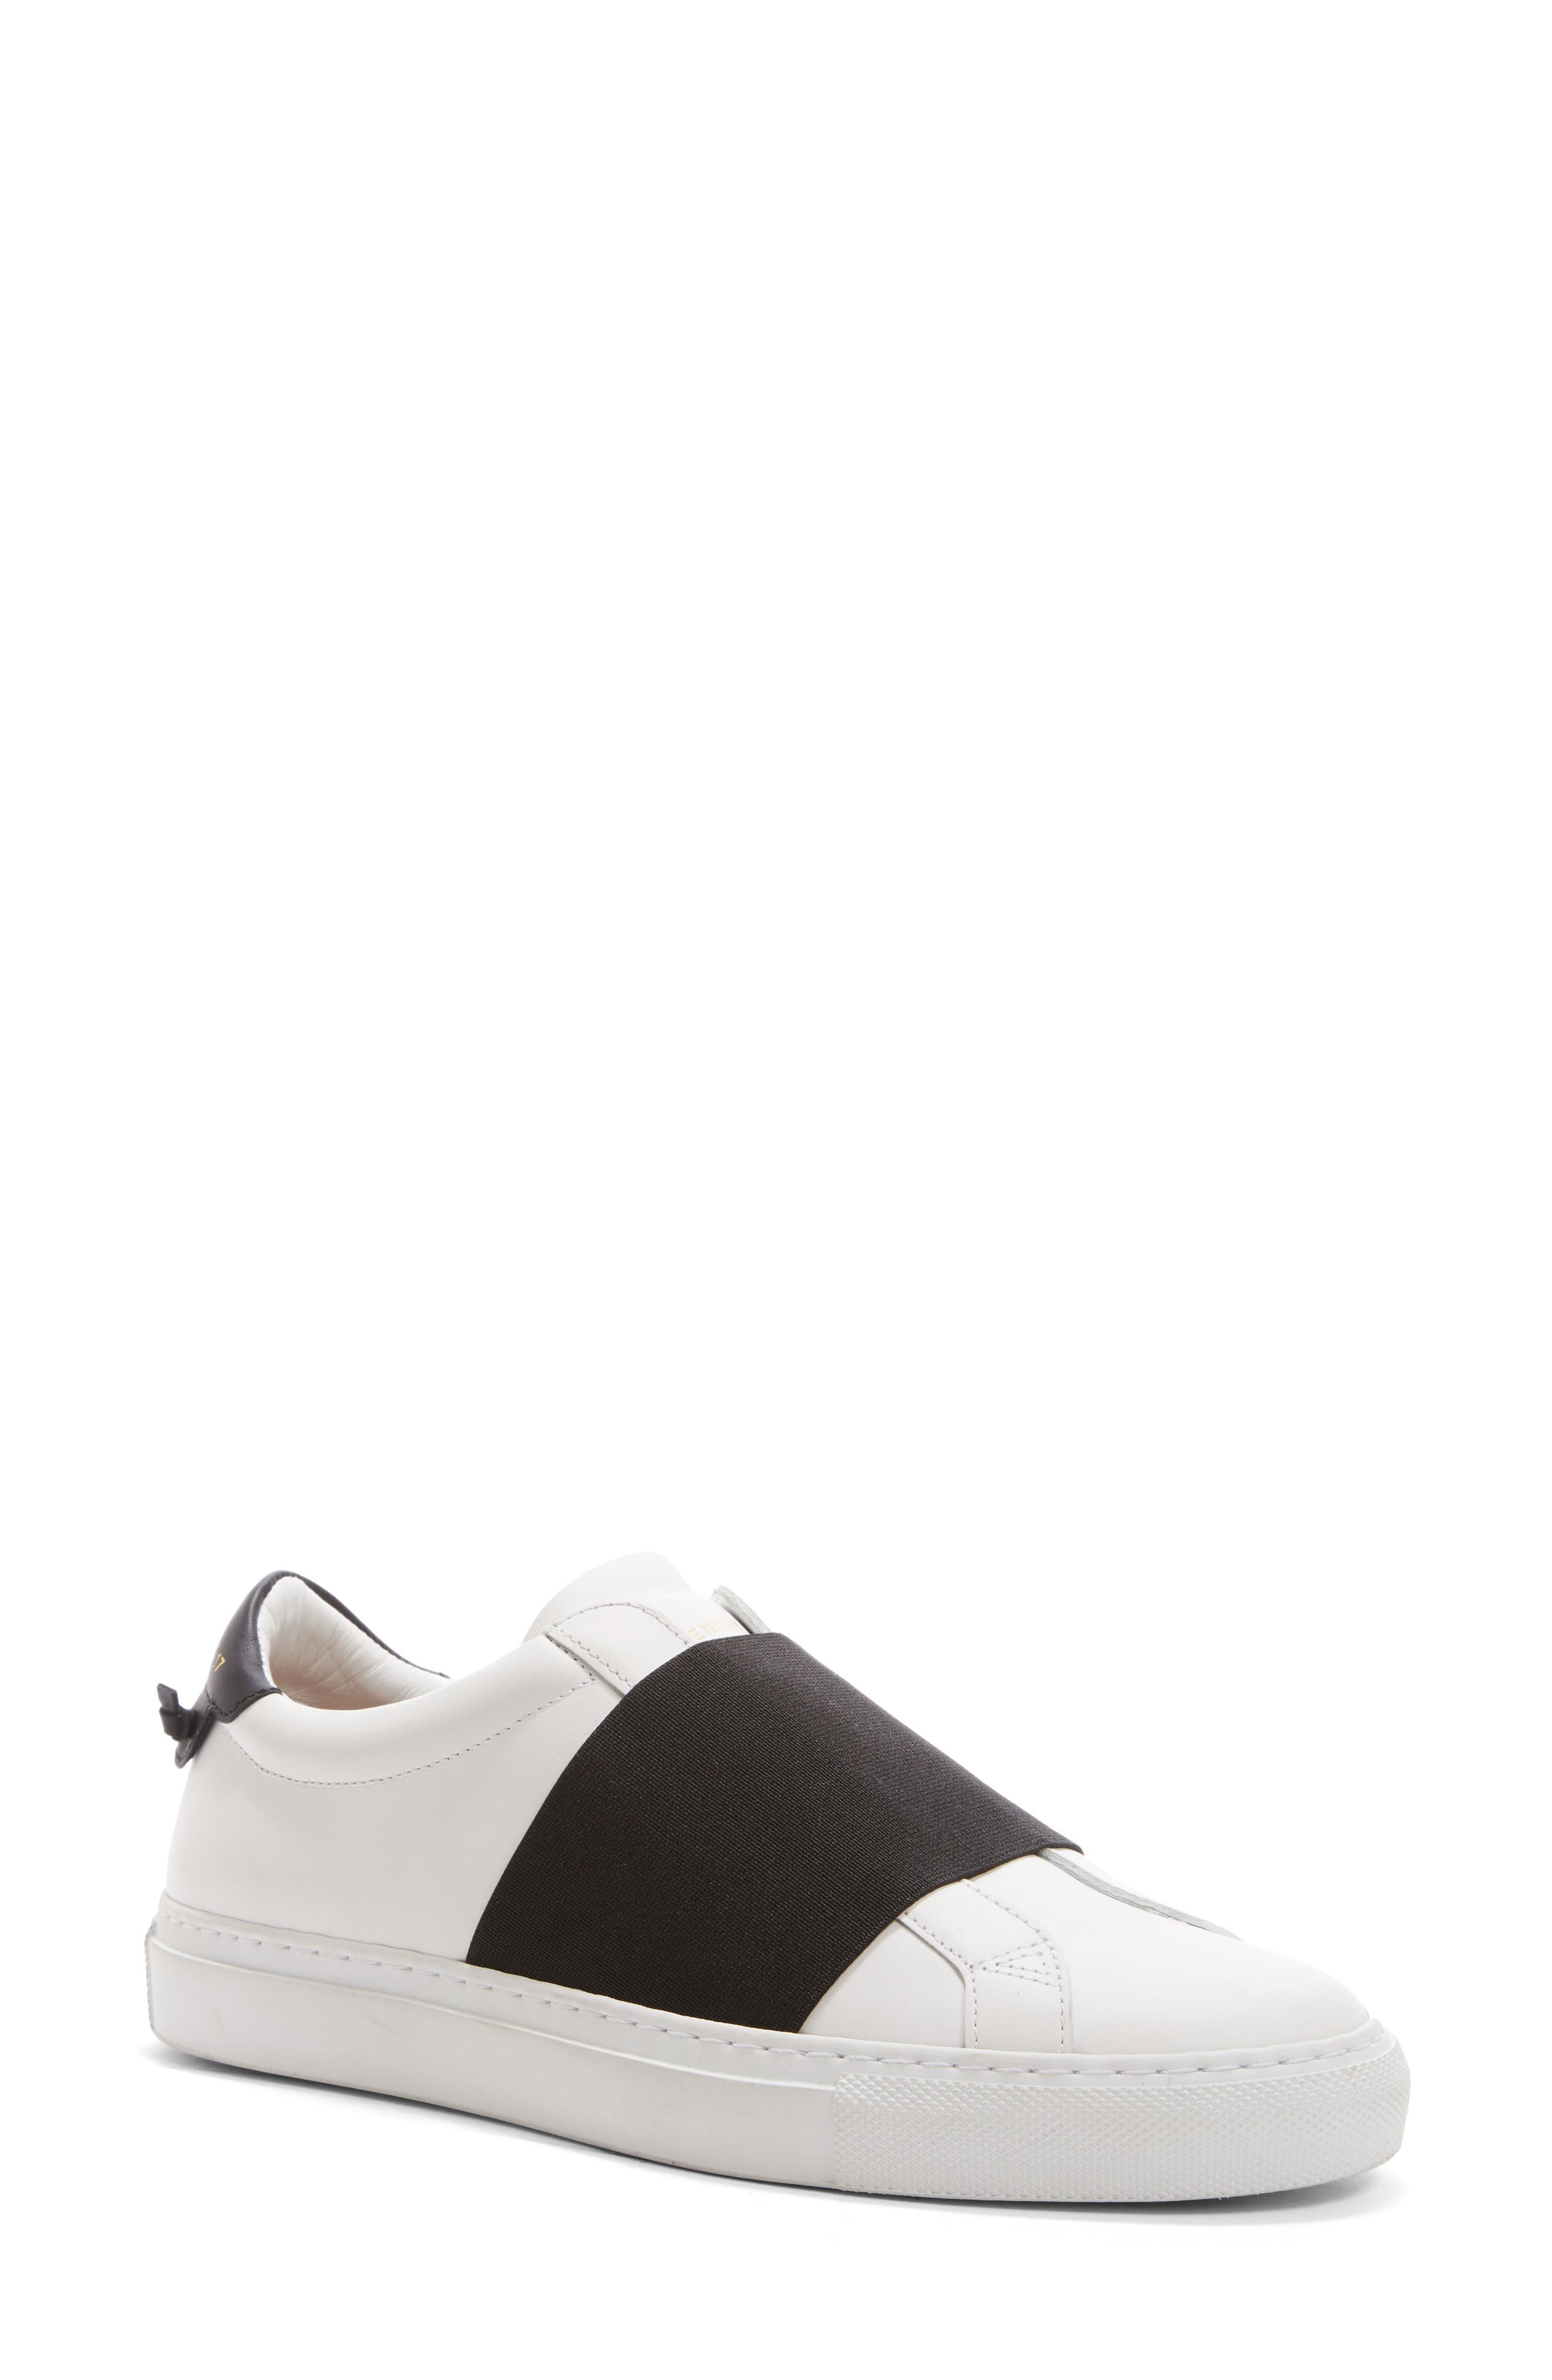 GIVENCHY Low Top Slip-On Sneaker